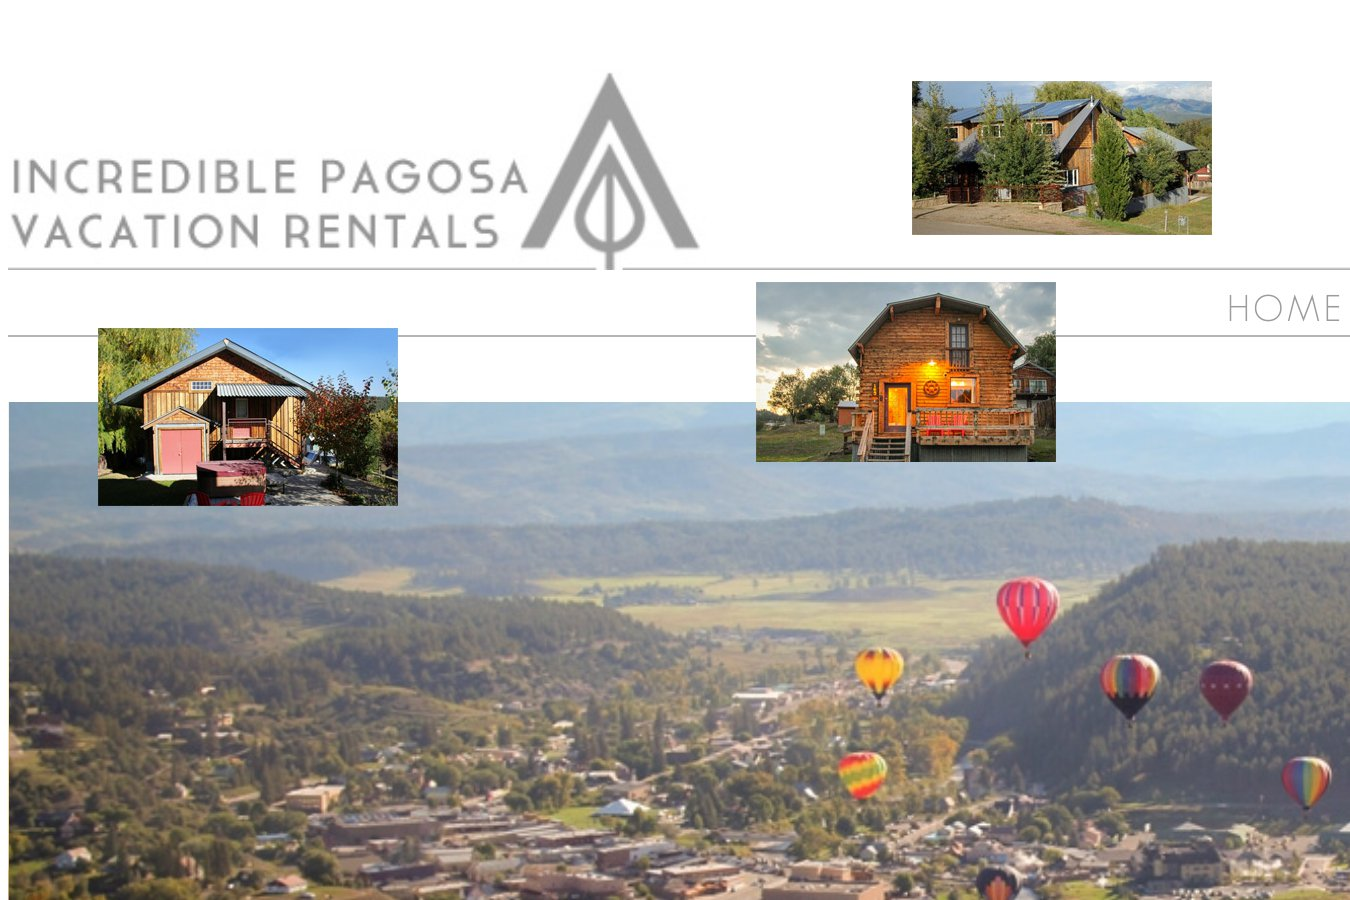 Incredible Pagosa Vacation Rentals